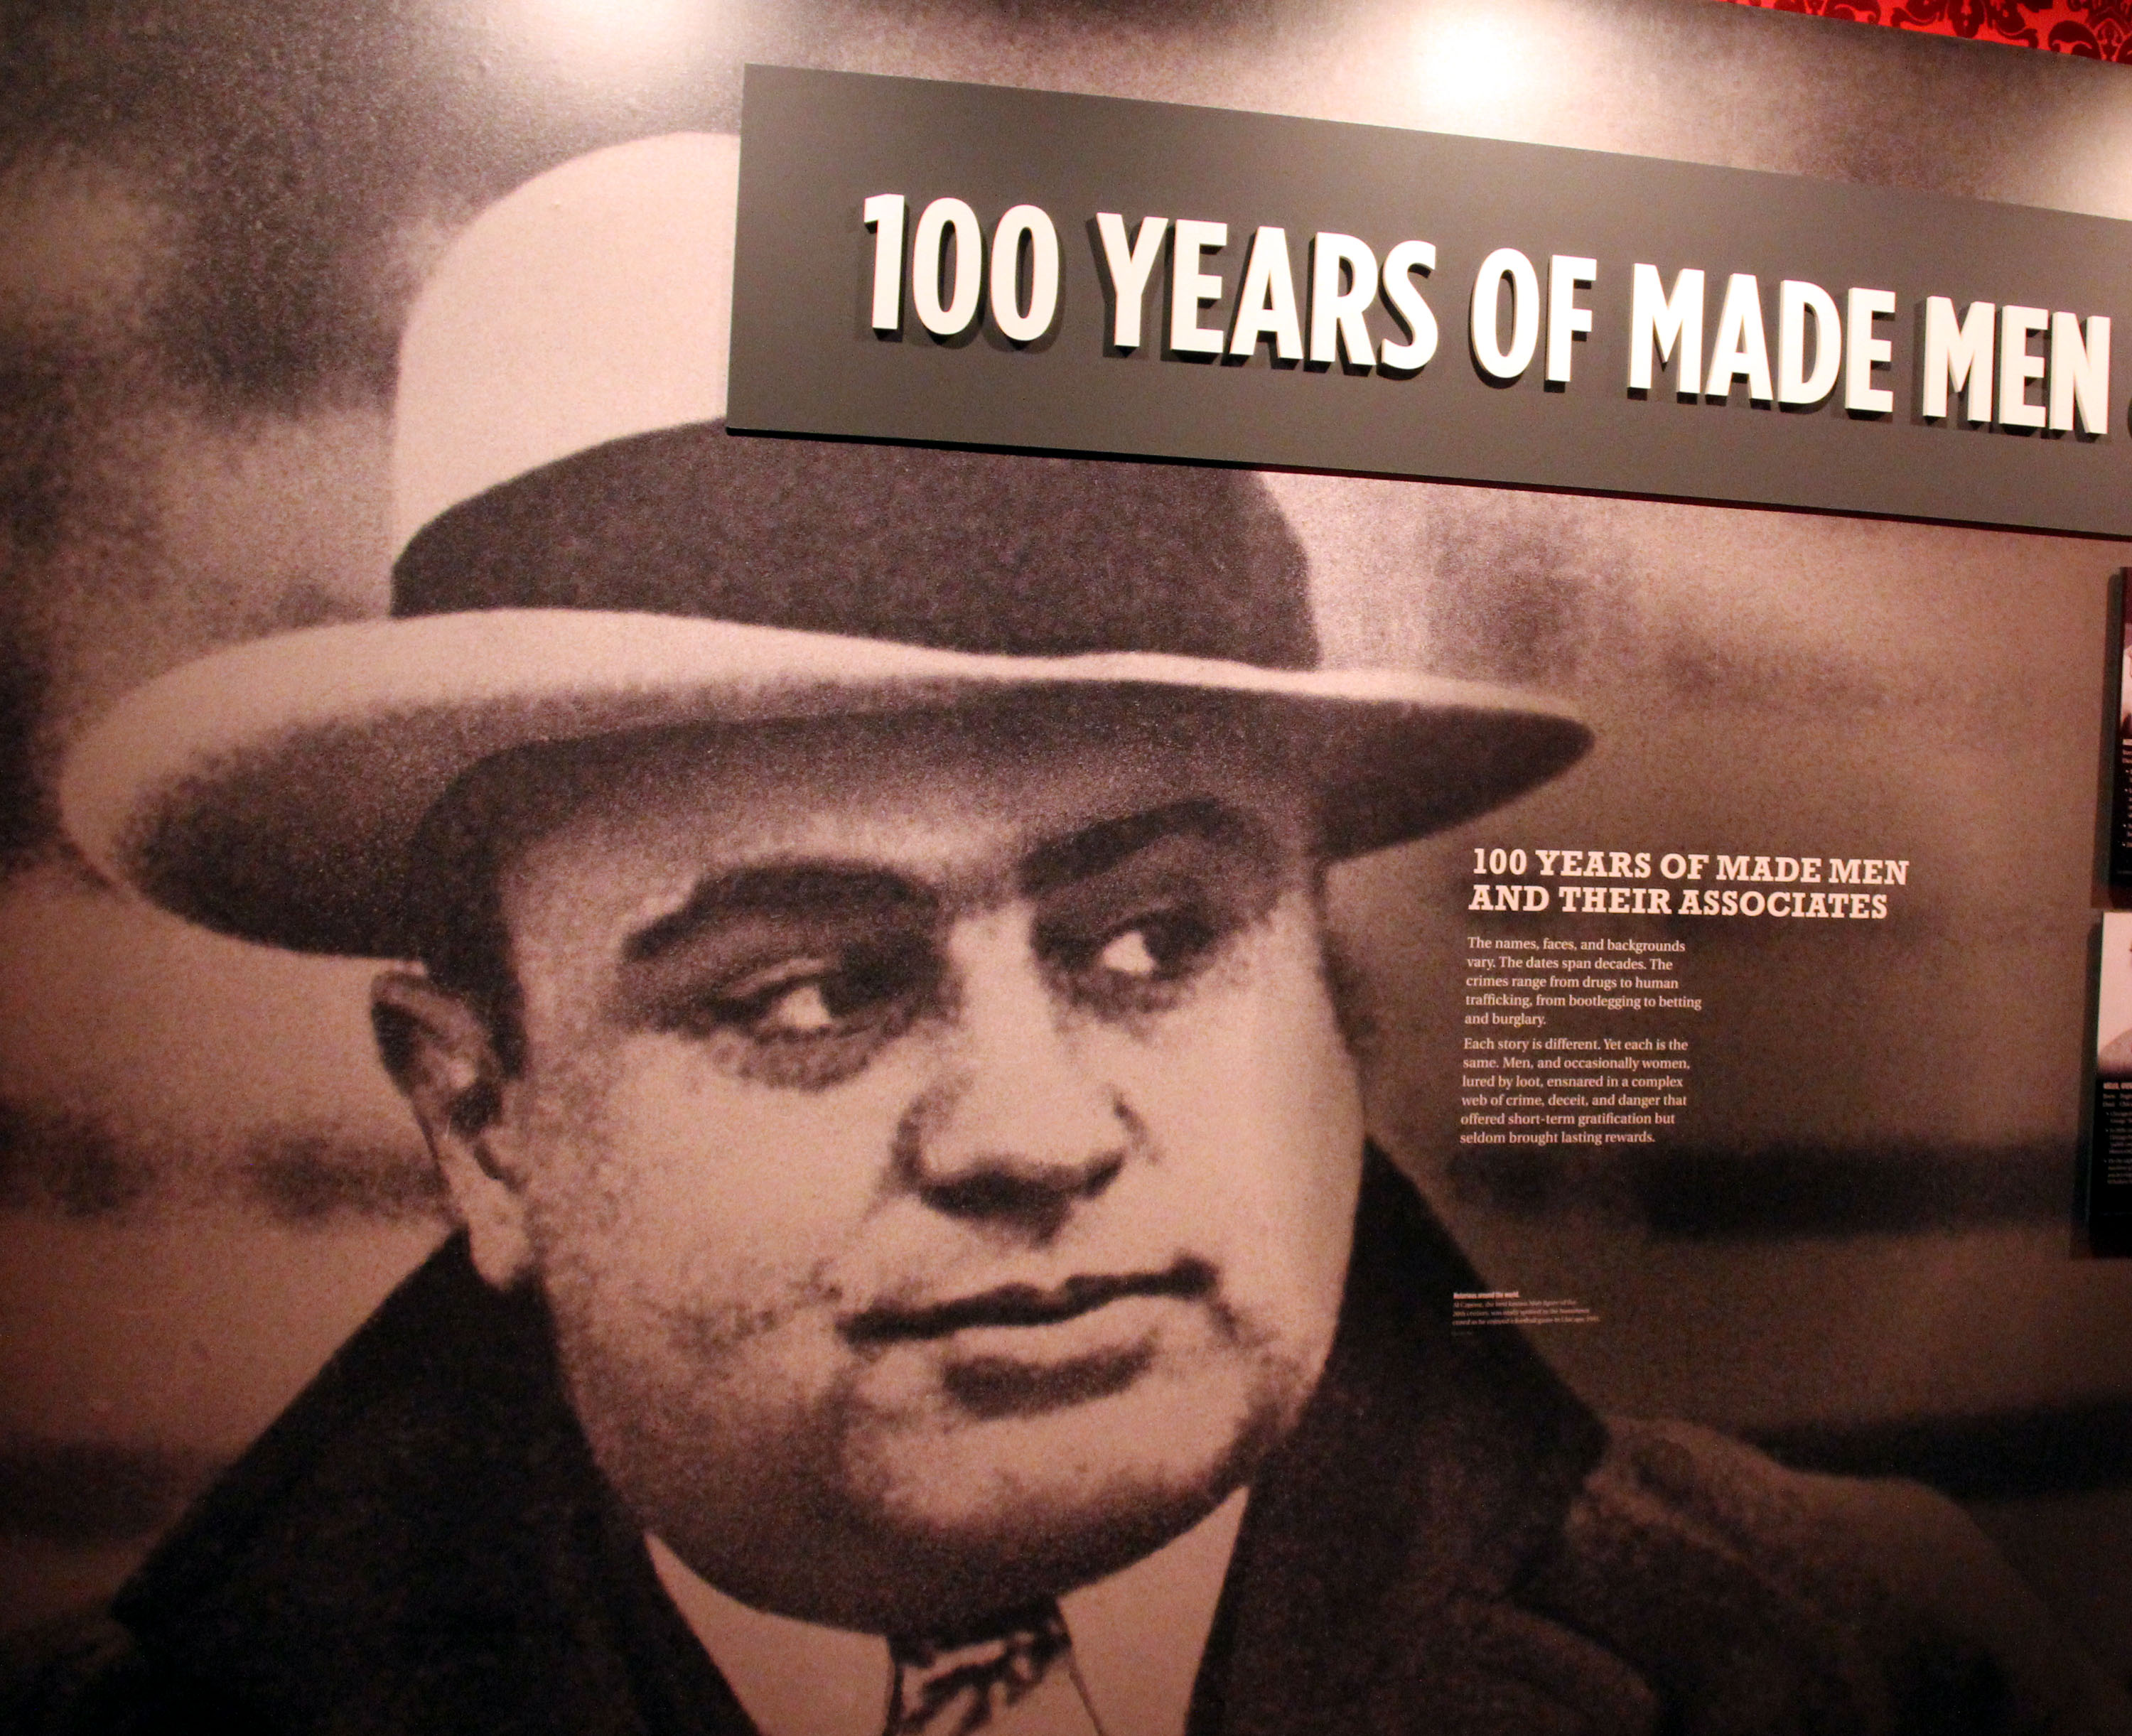 the criminal career of alphonse capone The criminal career of alphonse capone 390 words 1 page an introduction to the life of alphonse capone aka al capone 501 words 1 page a biography of al capone.